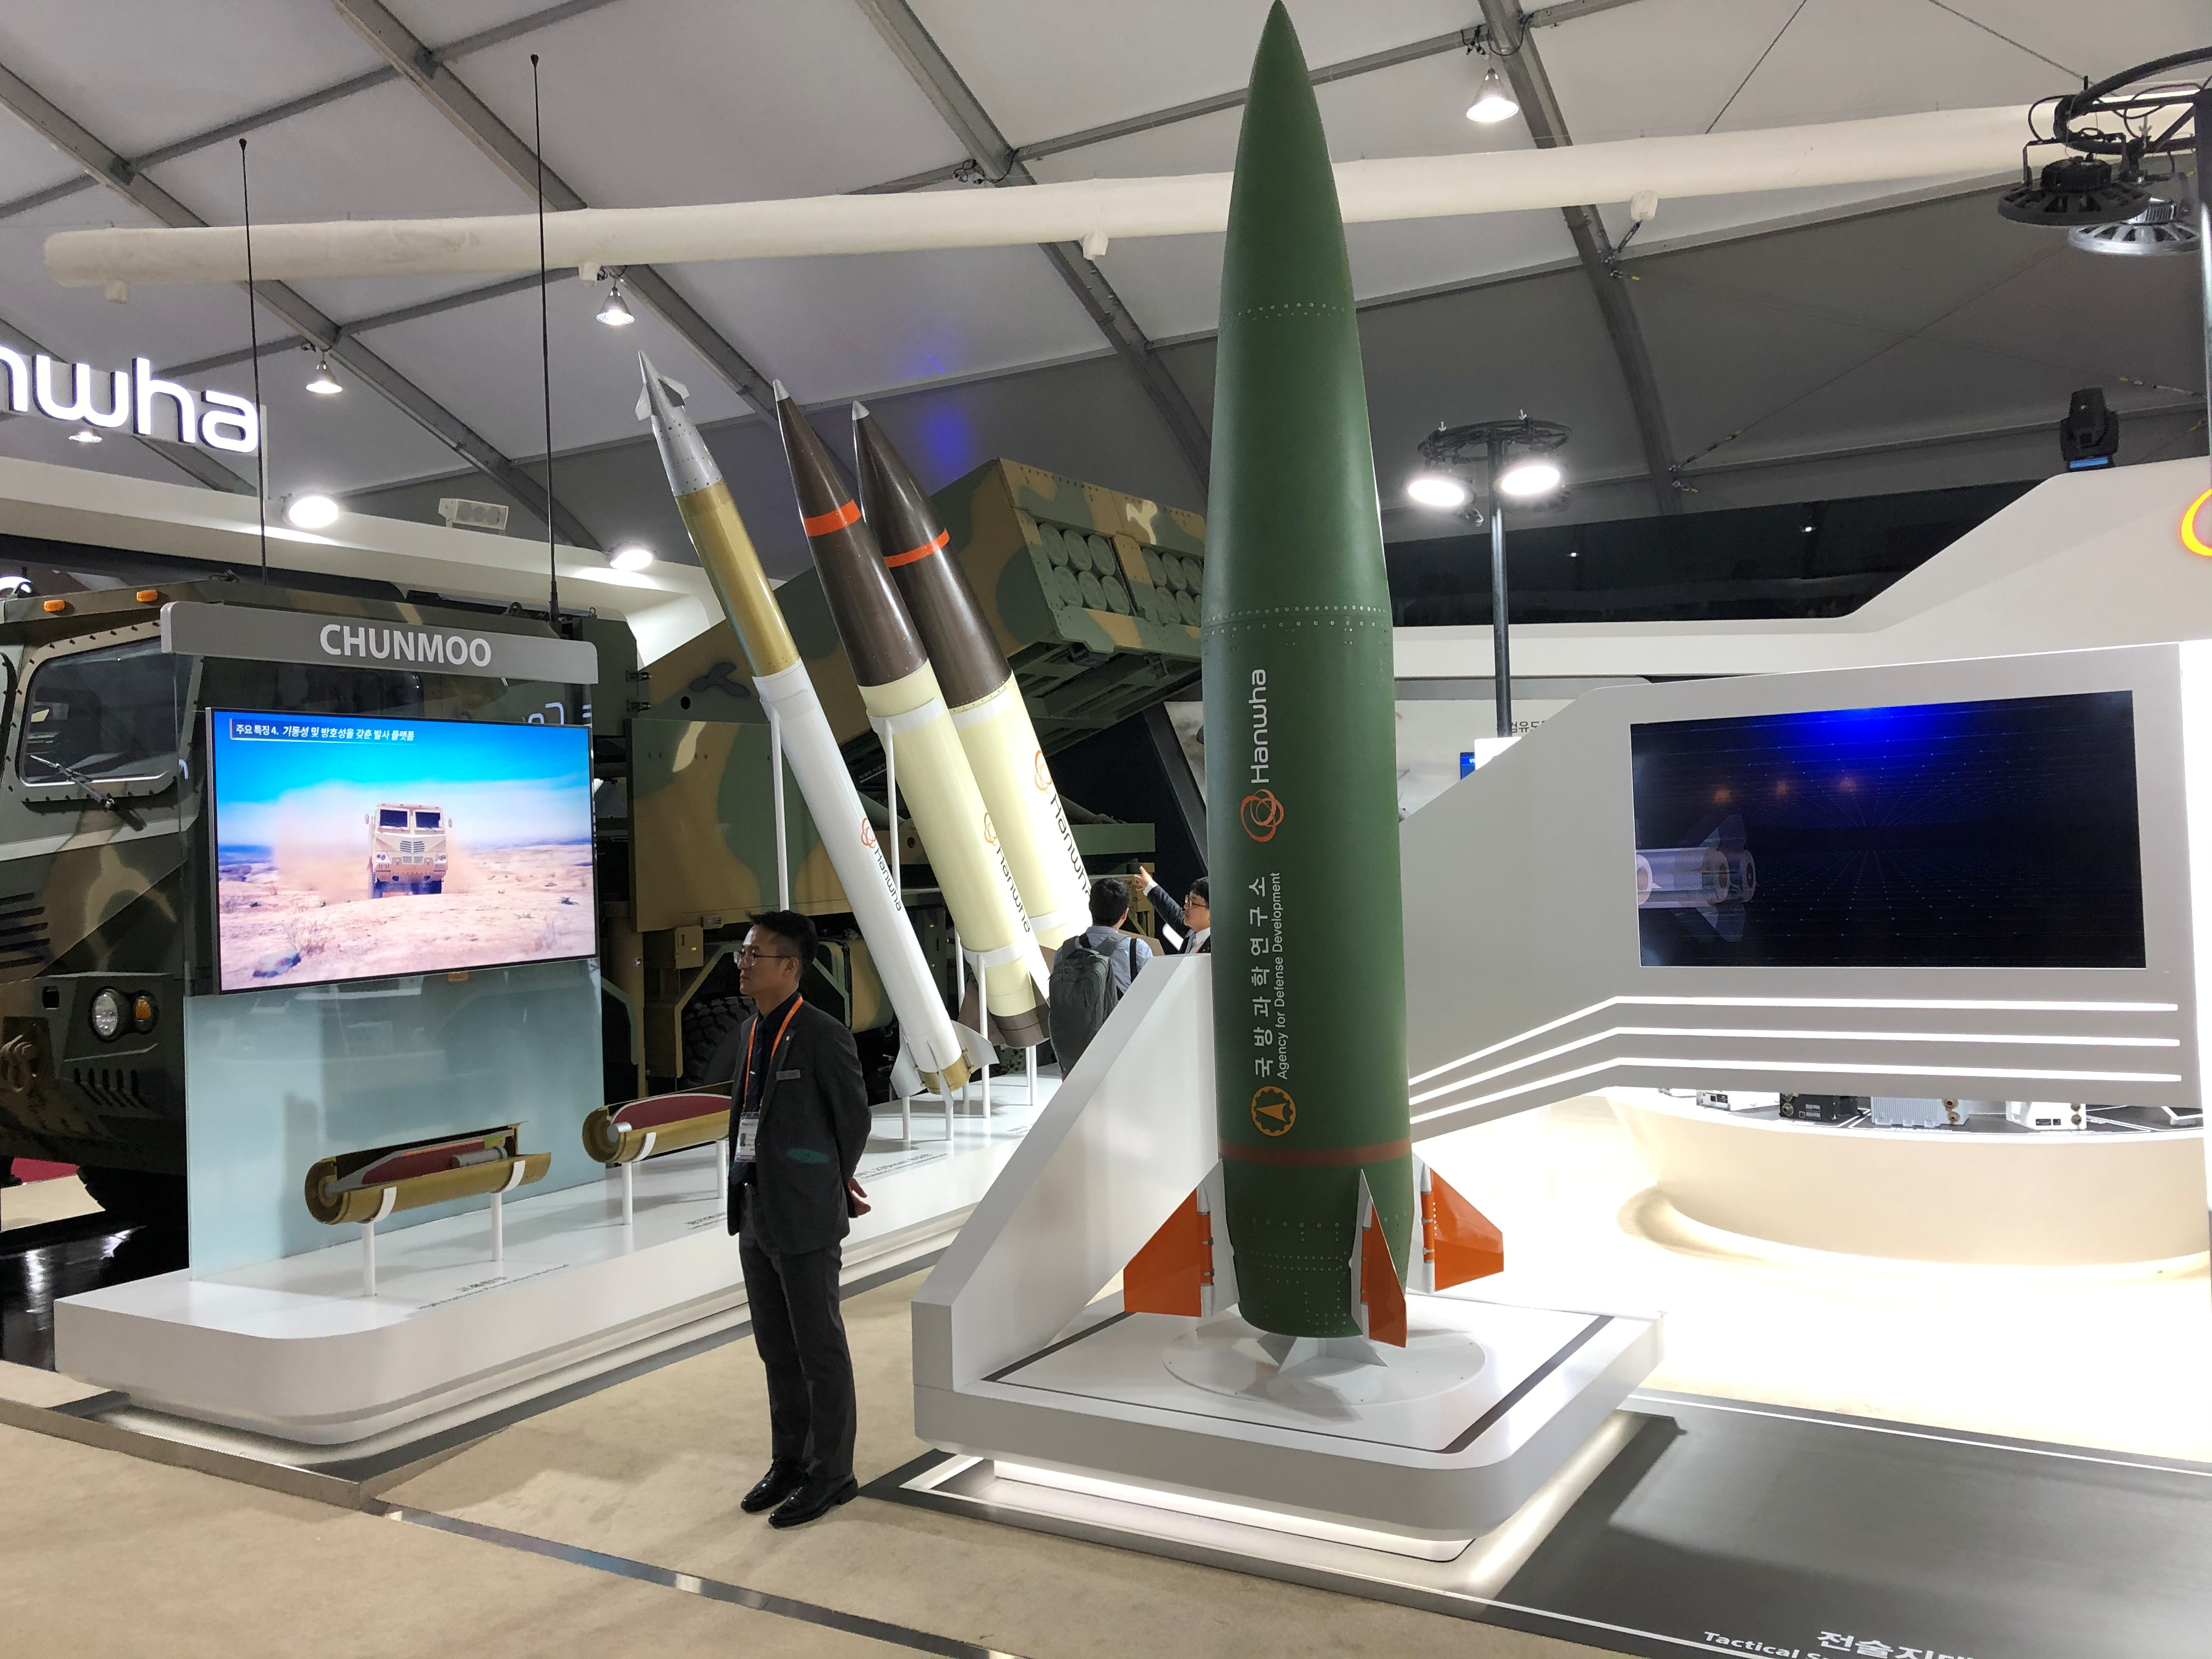 A tactical surface-to-surface missile developed by South Korea